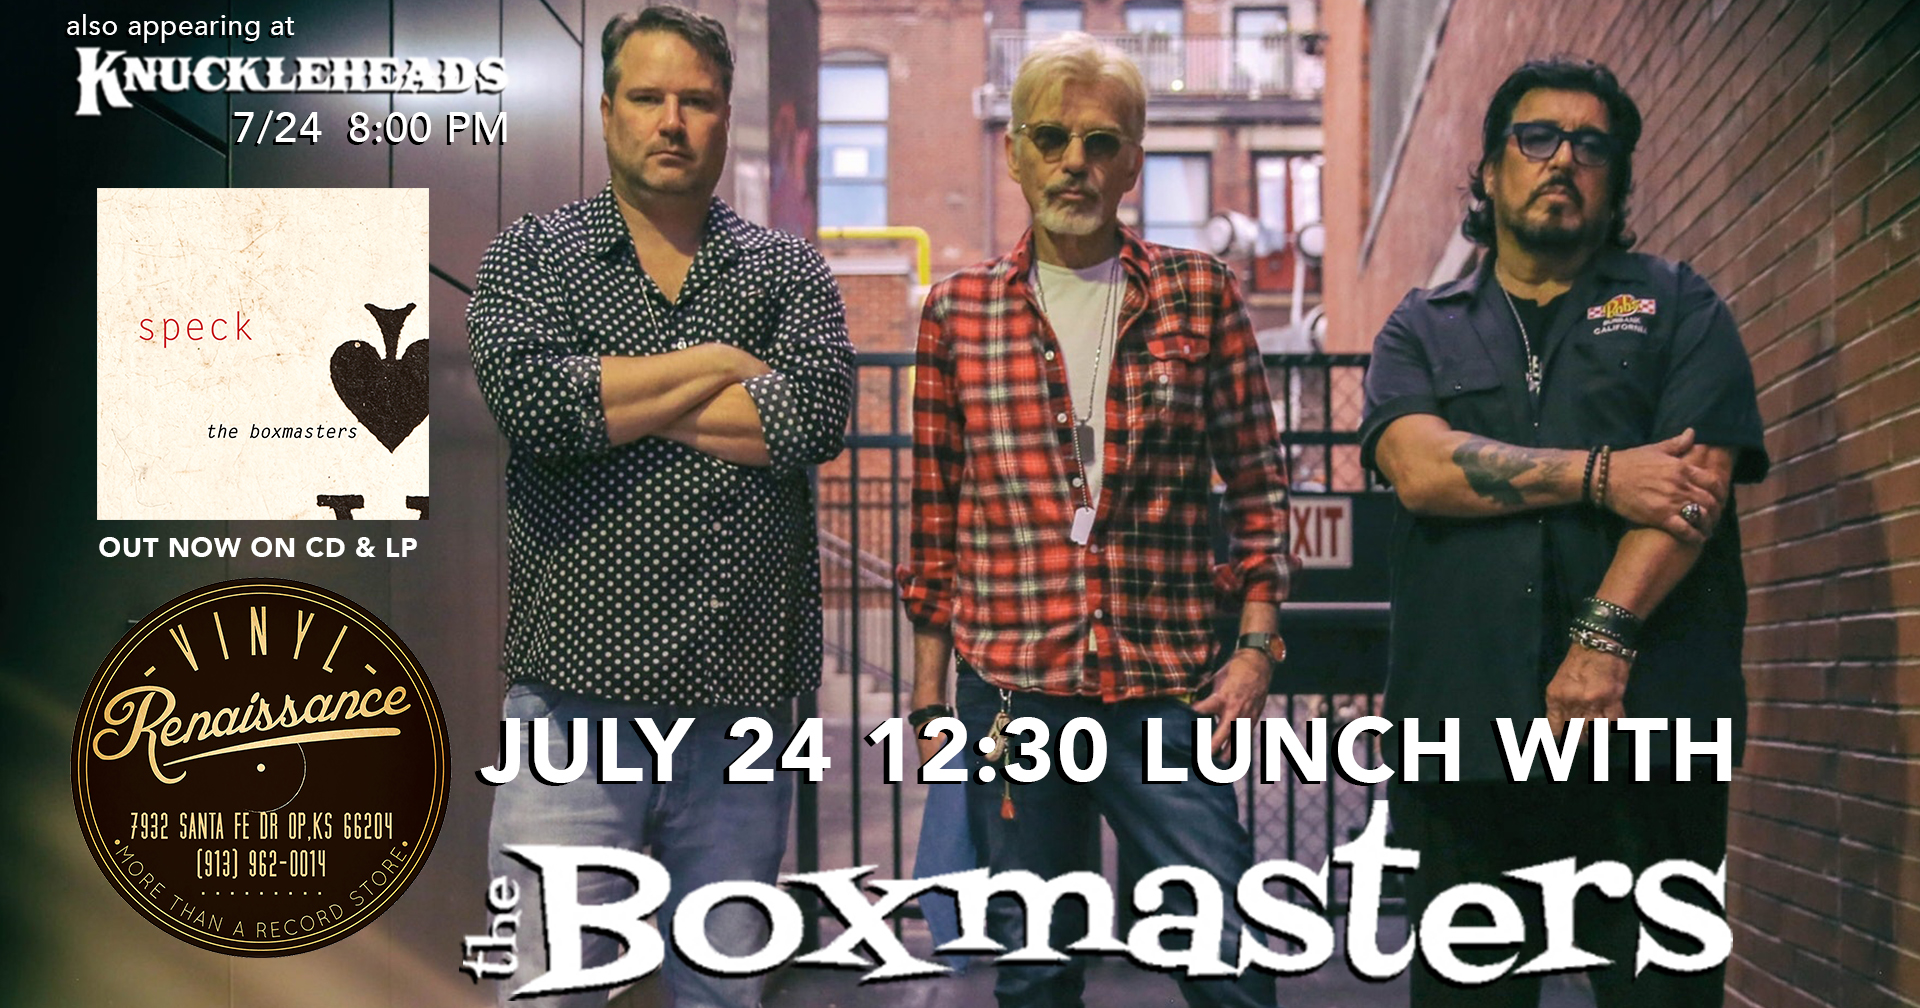 Lunch with The Boxmasters Free Lunch & Signing